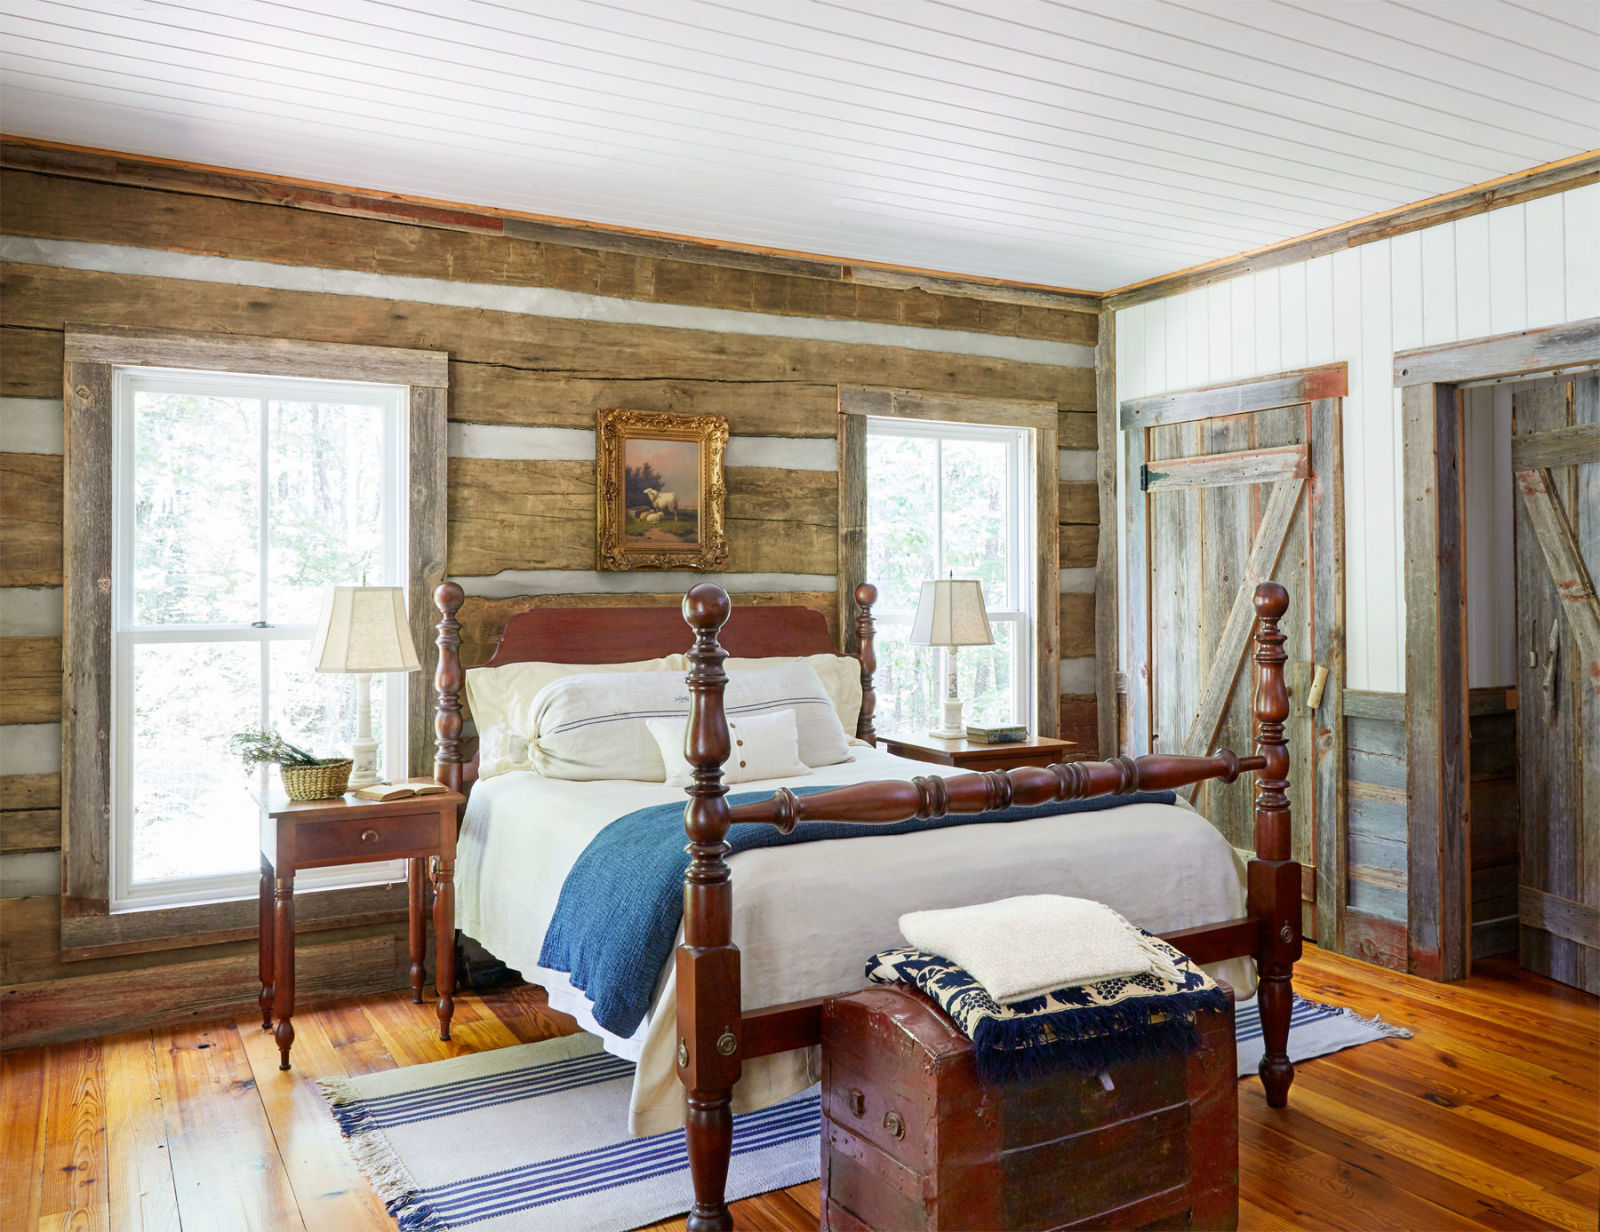 32 cozy bedroom ideas how to make your room feel cozy - Country Bedroom Ideas Decorating